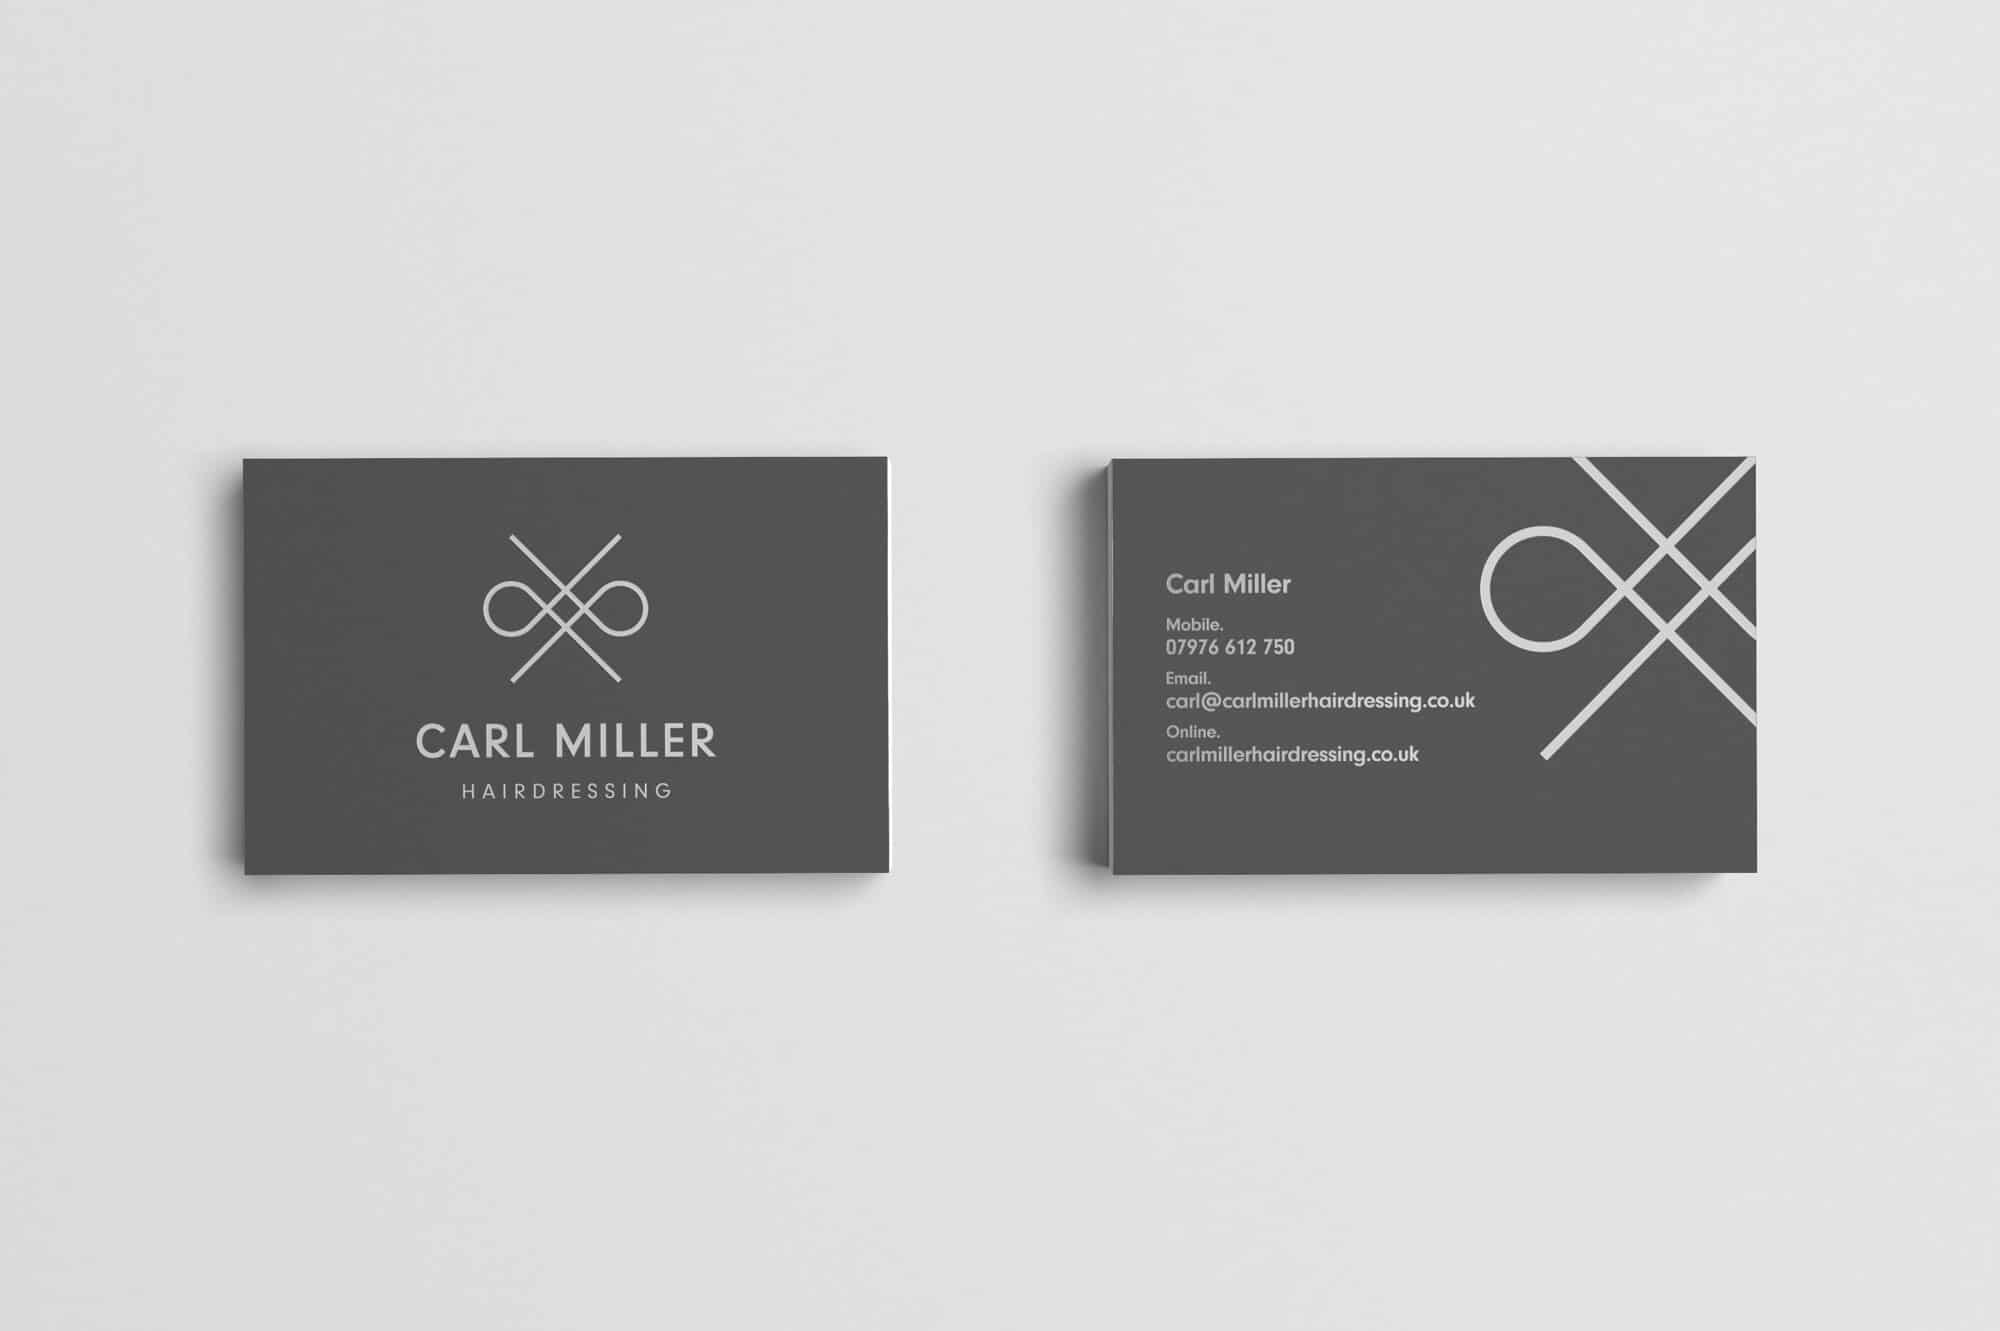 Carl Miller Hairdressing Business Cards